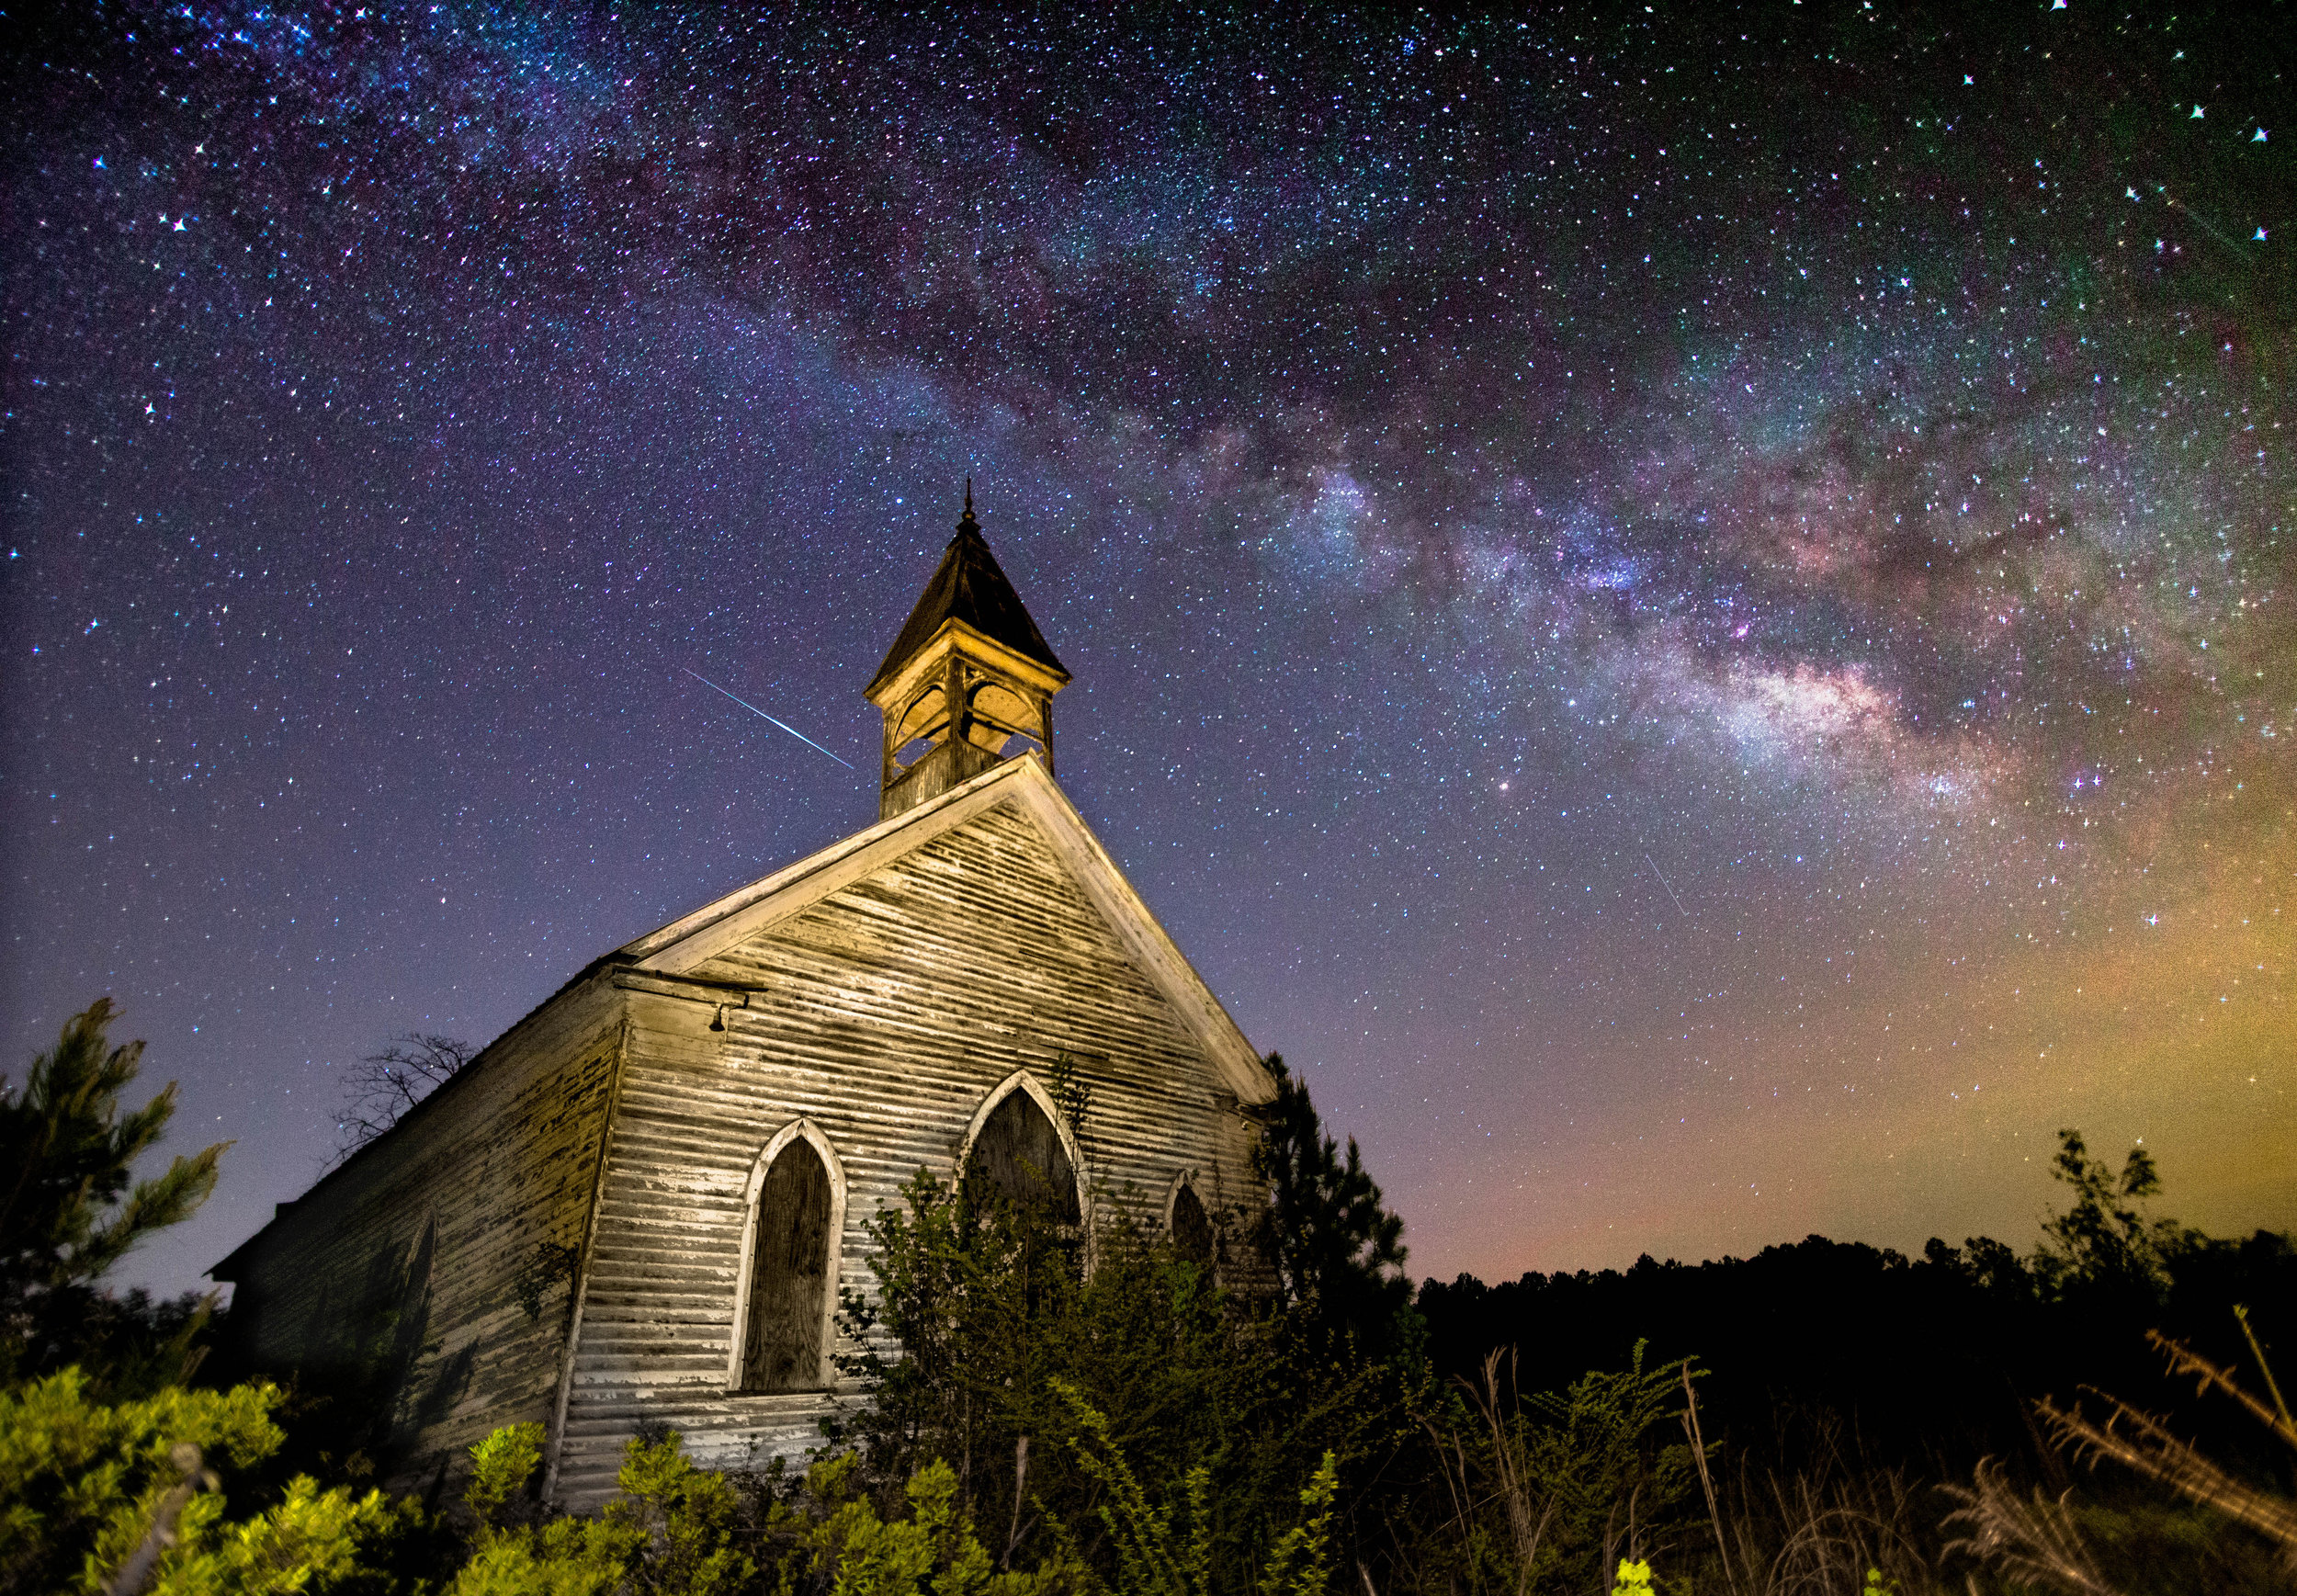 Coatopa Presbyterian Church - Two things I absolutely love to shoot. Old abandoned structures and the Milky Way. The Milky Way can't be seen in the dead of winter, so I had to wait until April before everything was too grown up. Read more about this in my book.